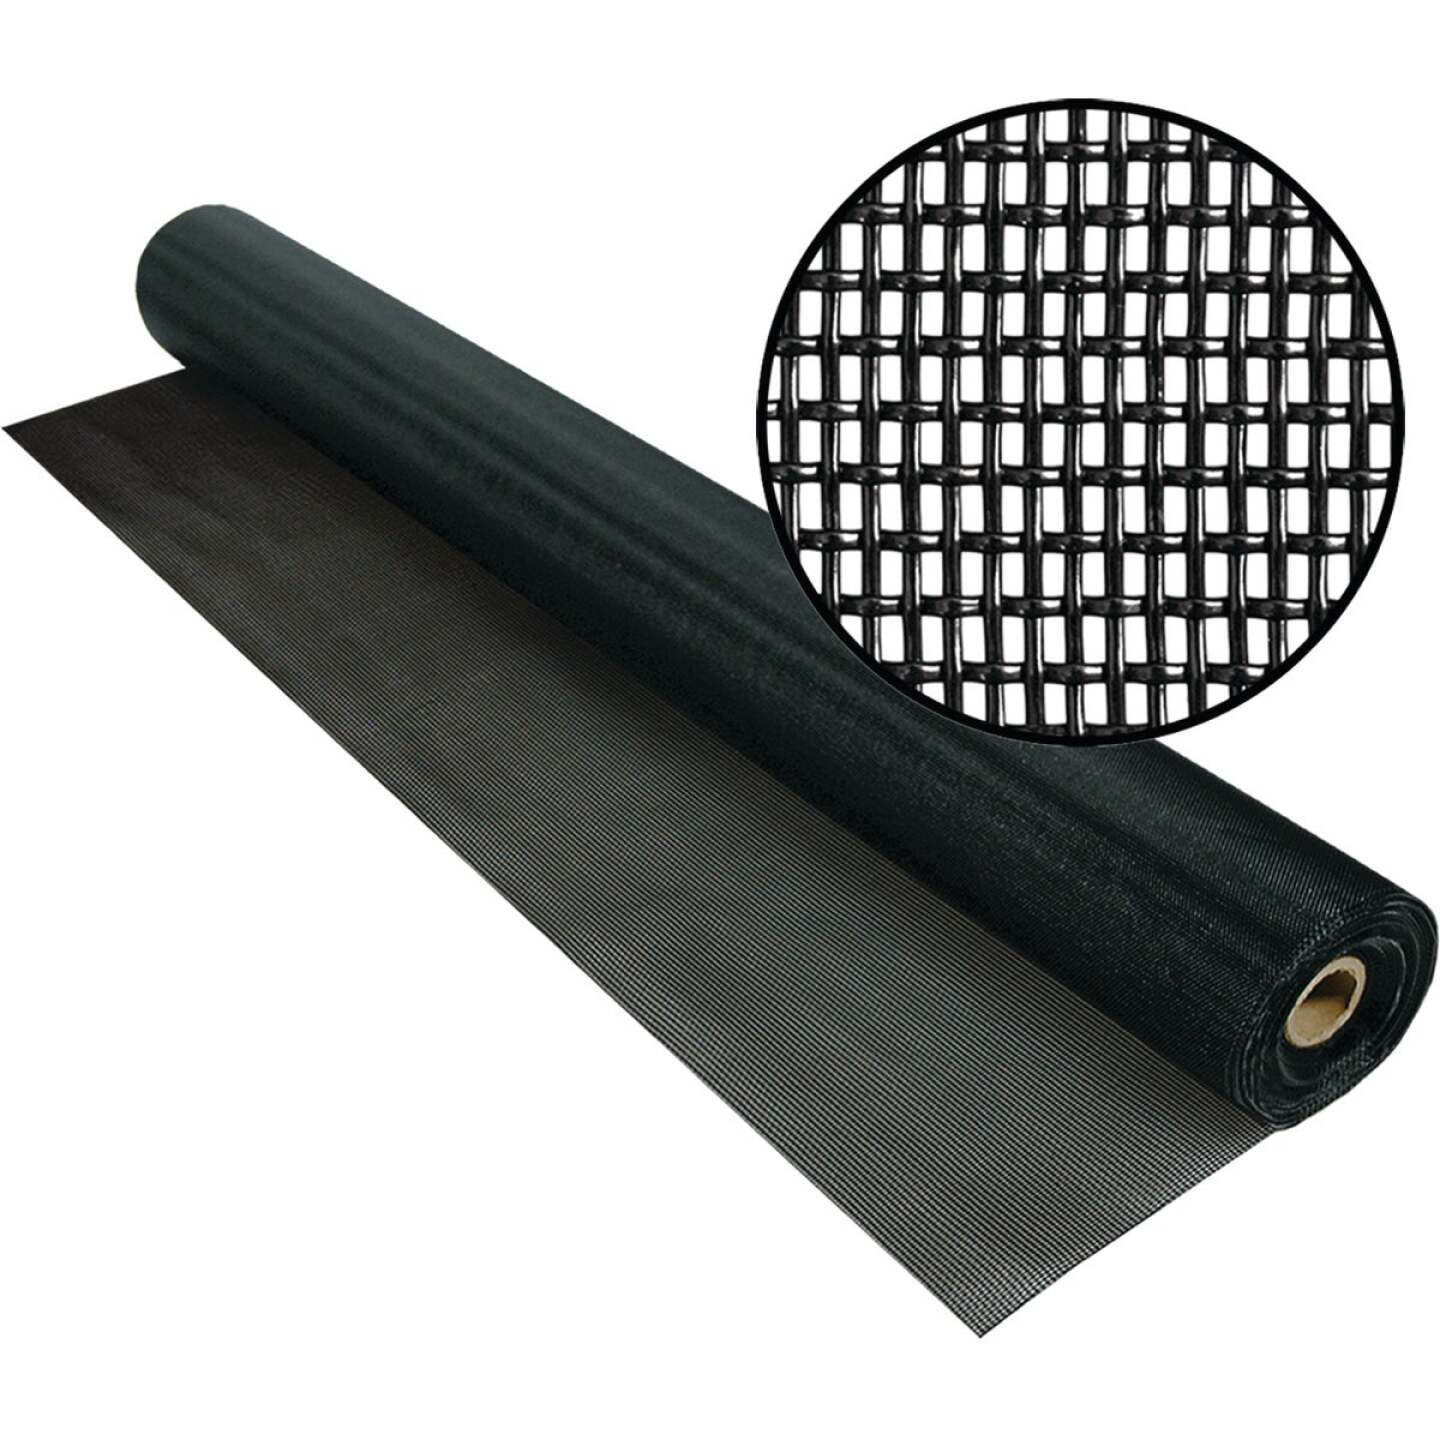 Phifer PetScreen 48 In. x 100 Ft. Black Pet-Resistant Screening Image 1